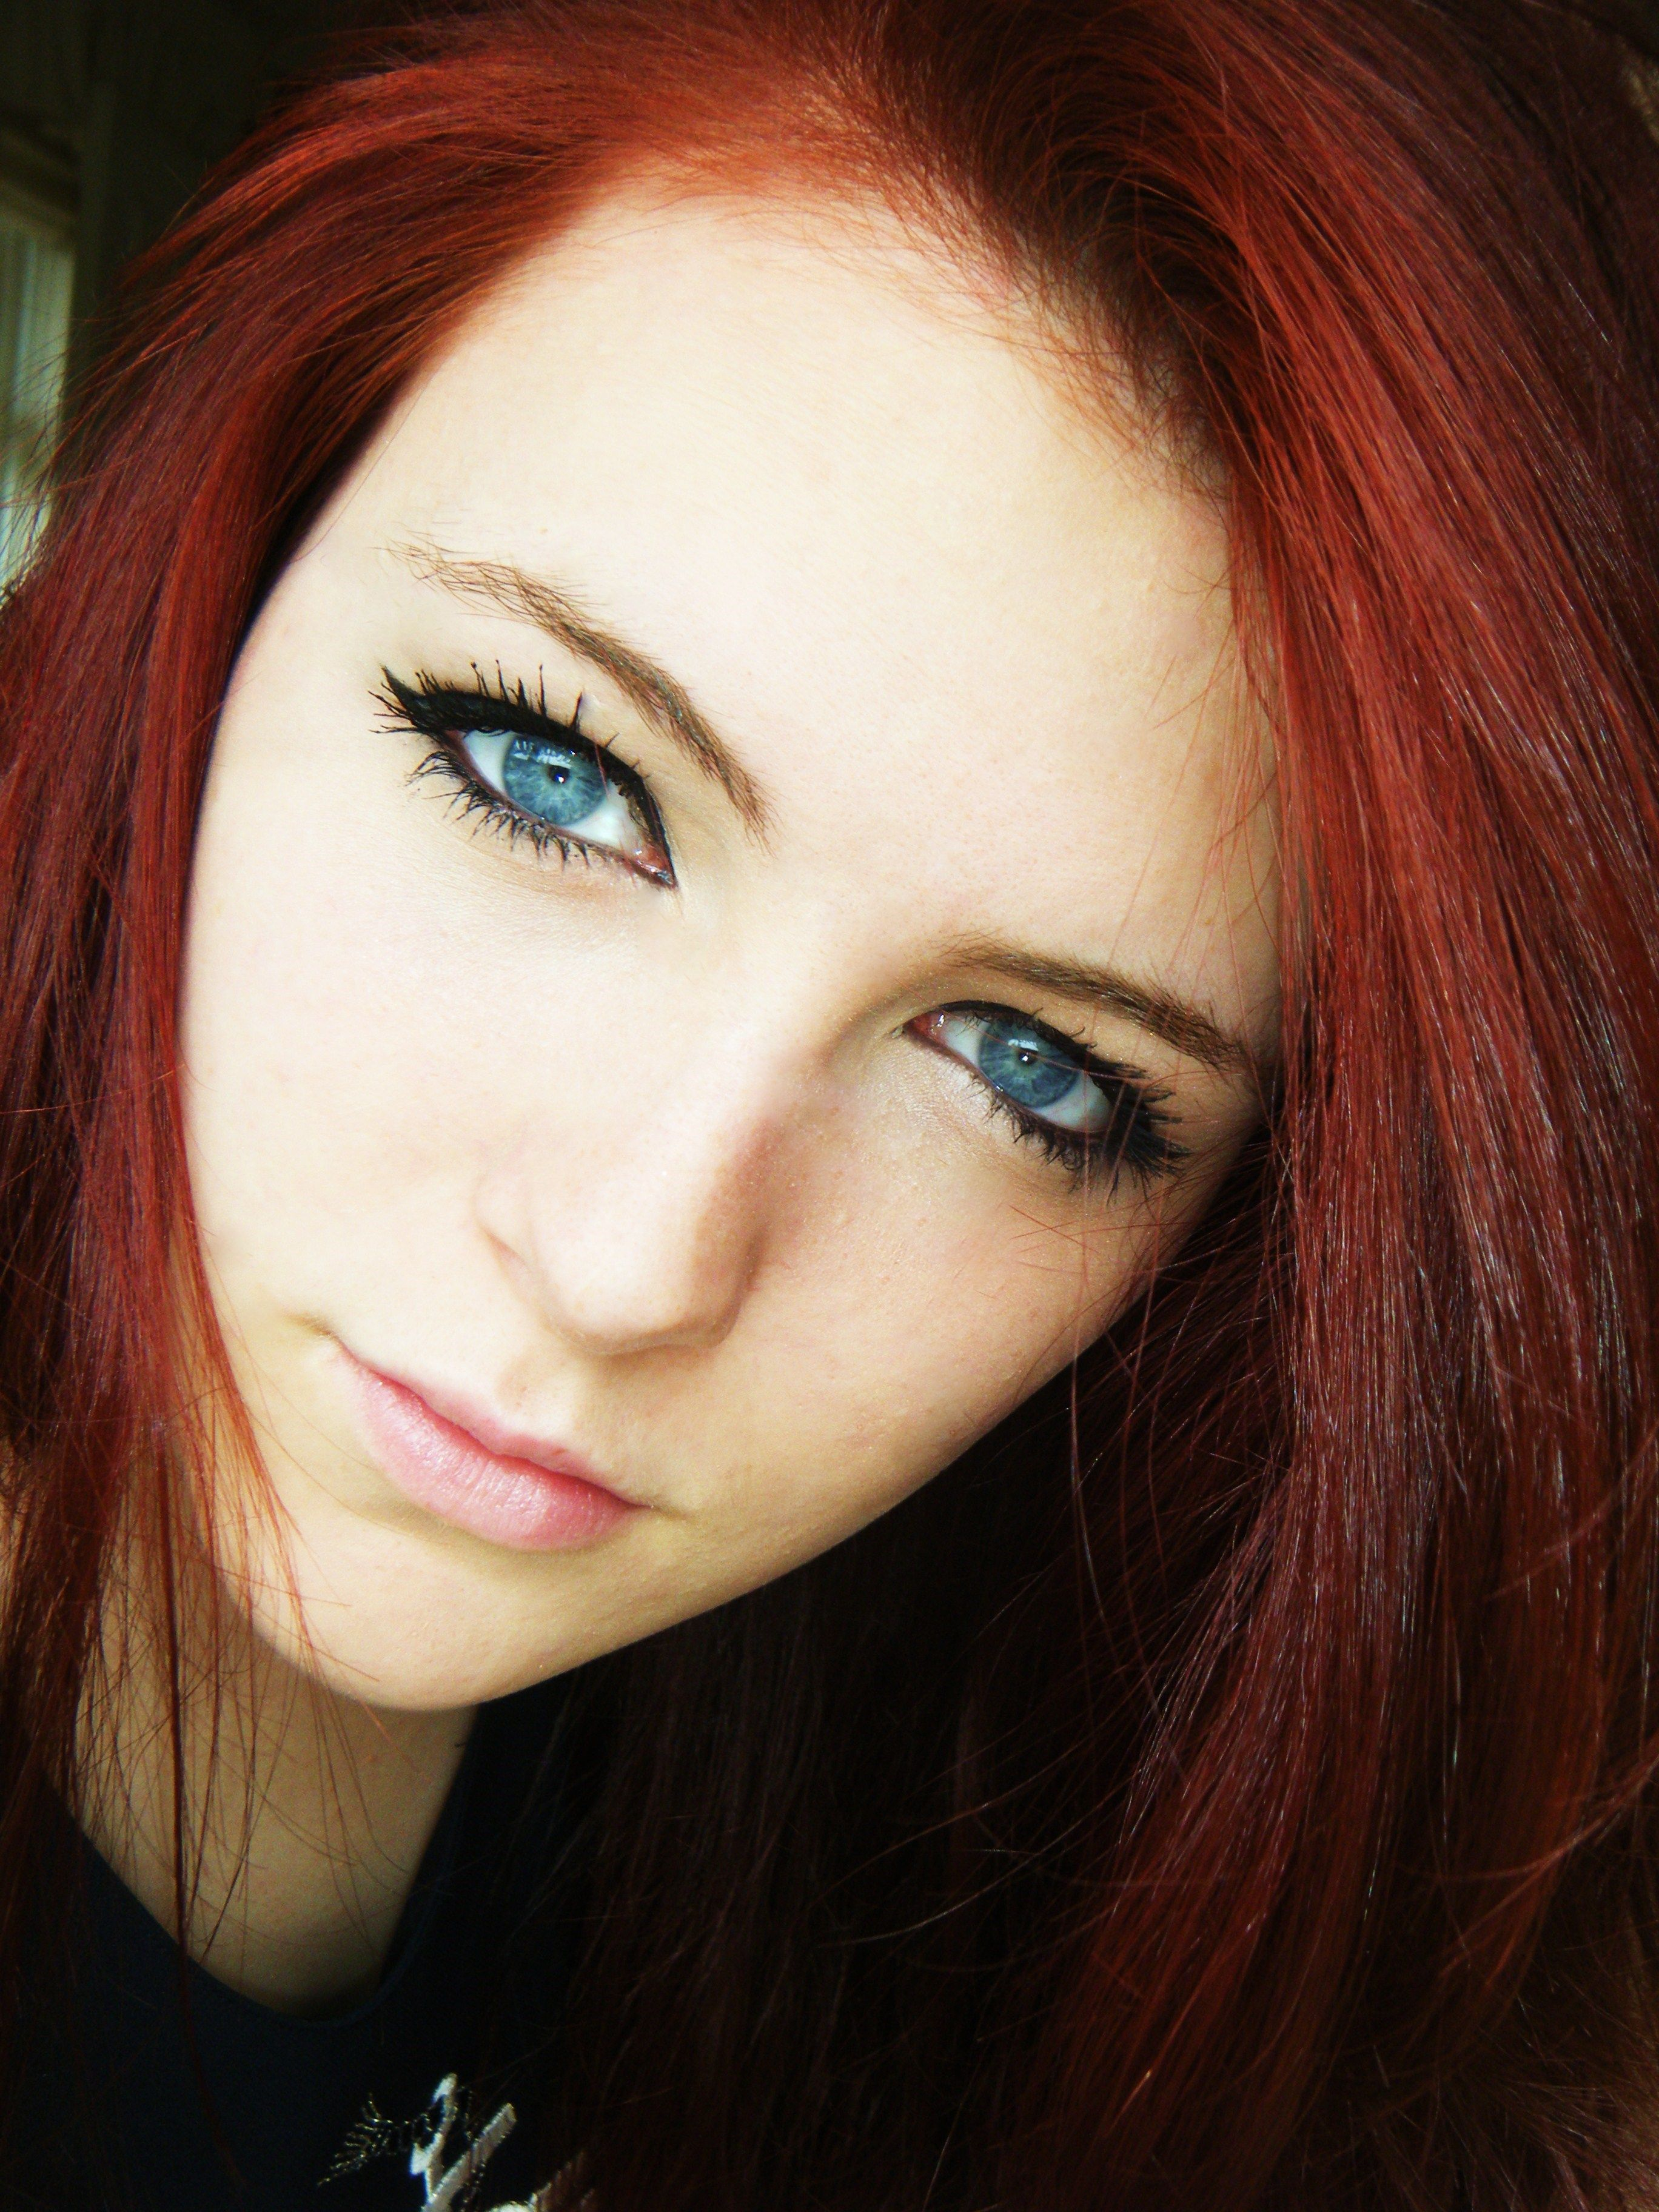 portrait red hair blue eyes and makeup wallpaper women with eyes for pc hd